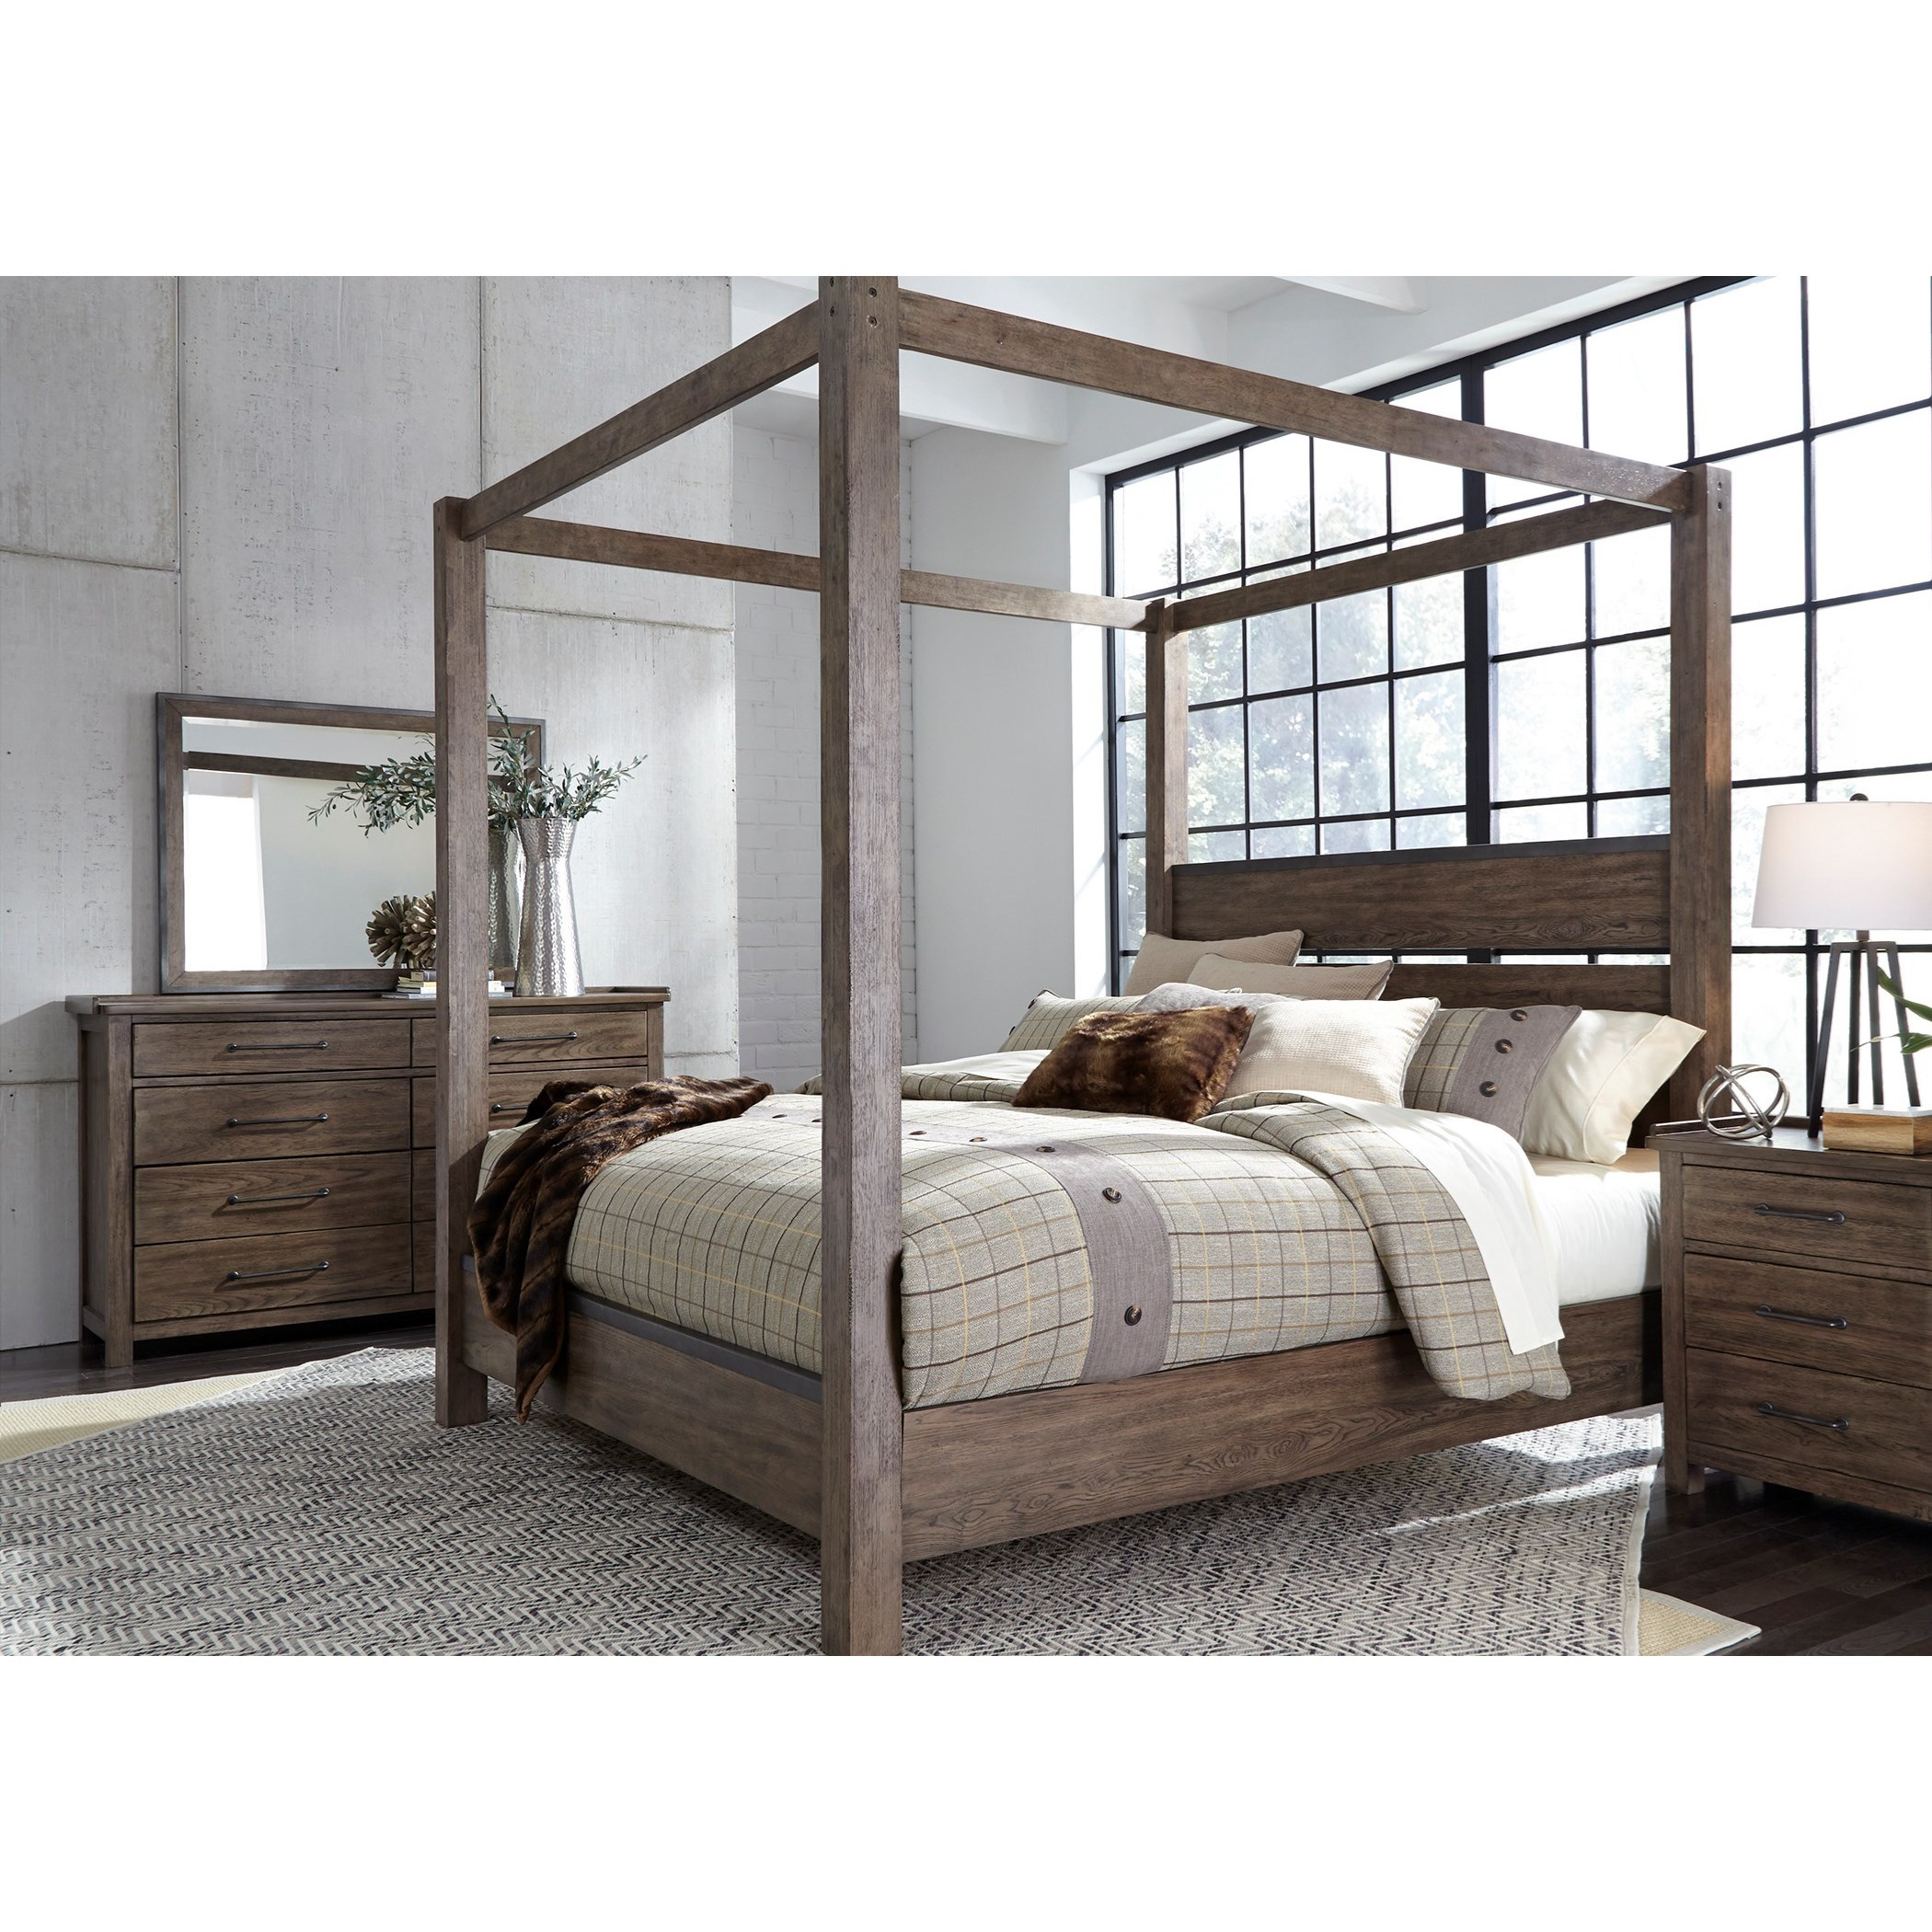 Sonoma Road California King Bedroom Group by Liberty Furniture at Westrich Furniture & Appliances